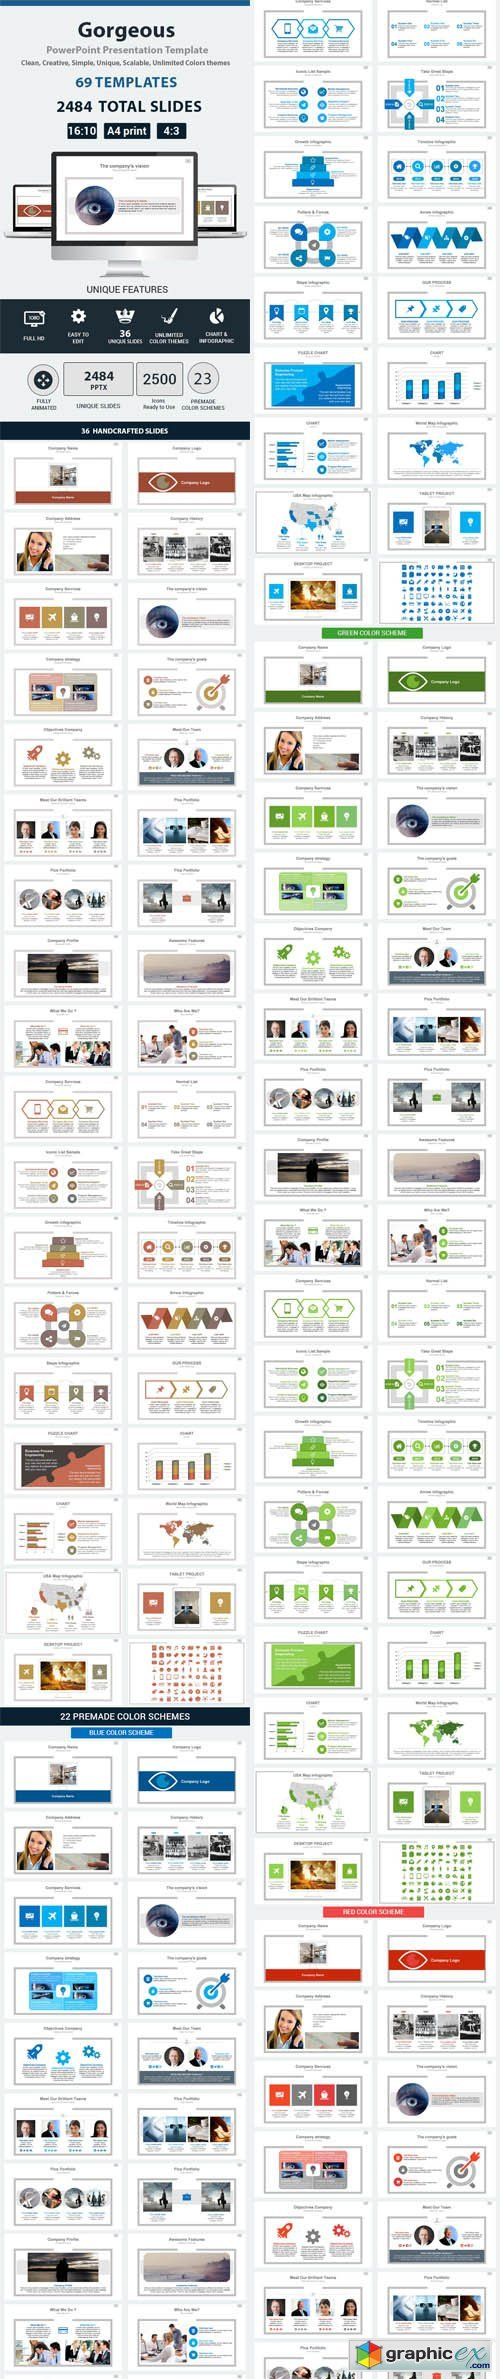 Gorgeous PowerPoint Presentation Template